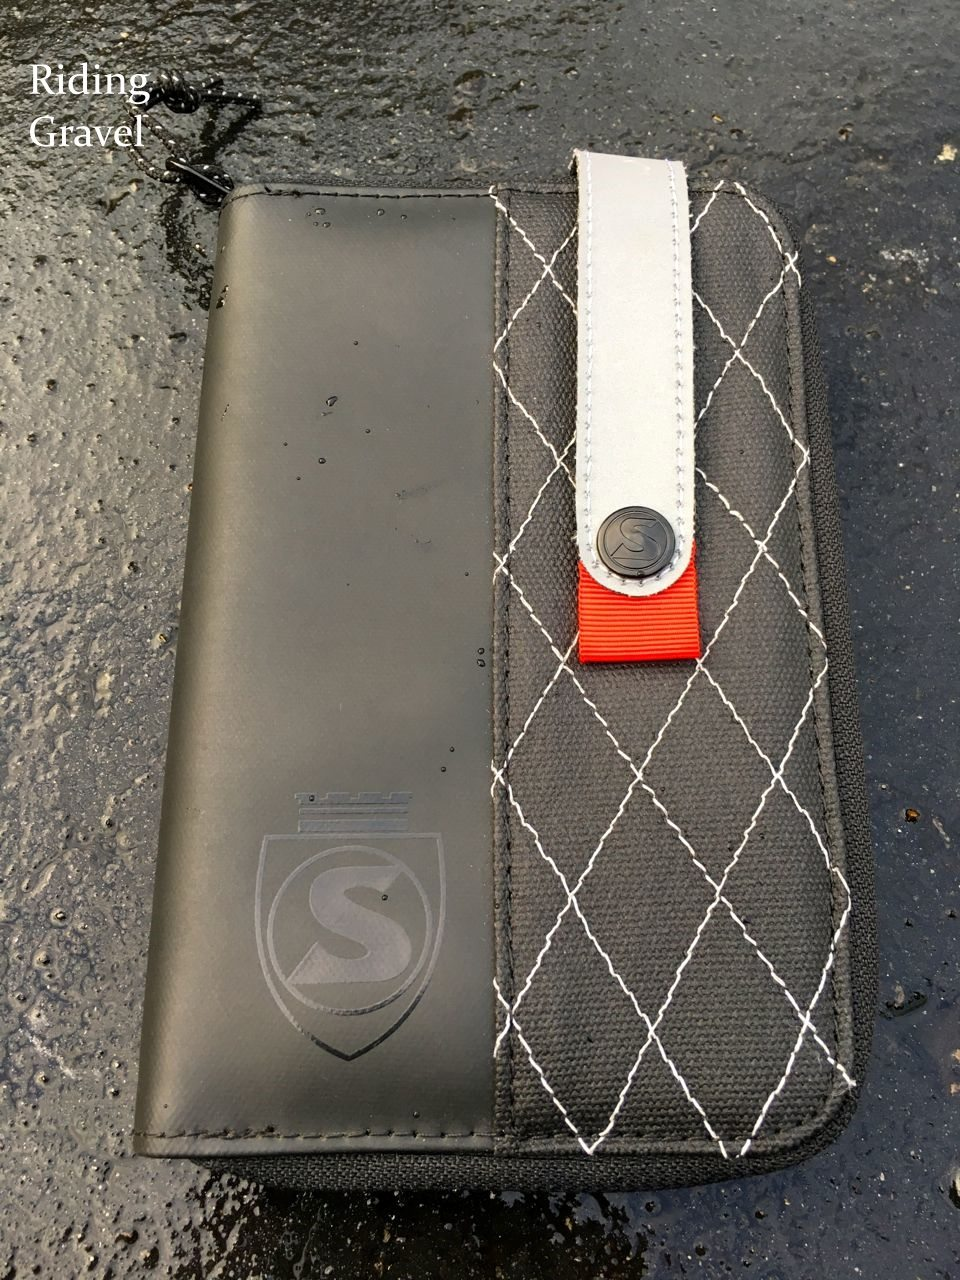 Silca Phone Wallet: Quick Review